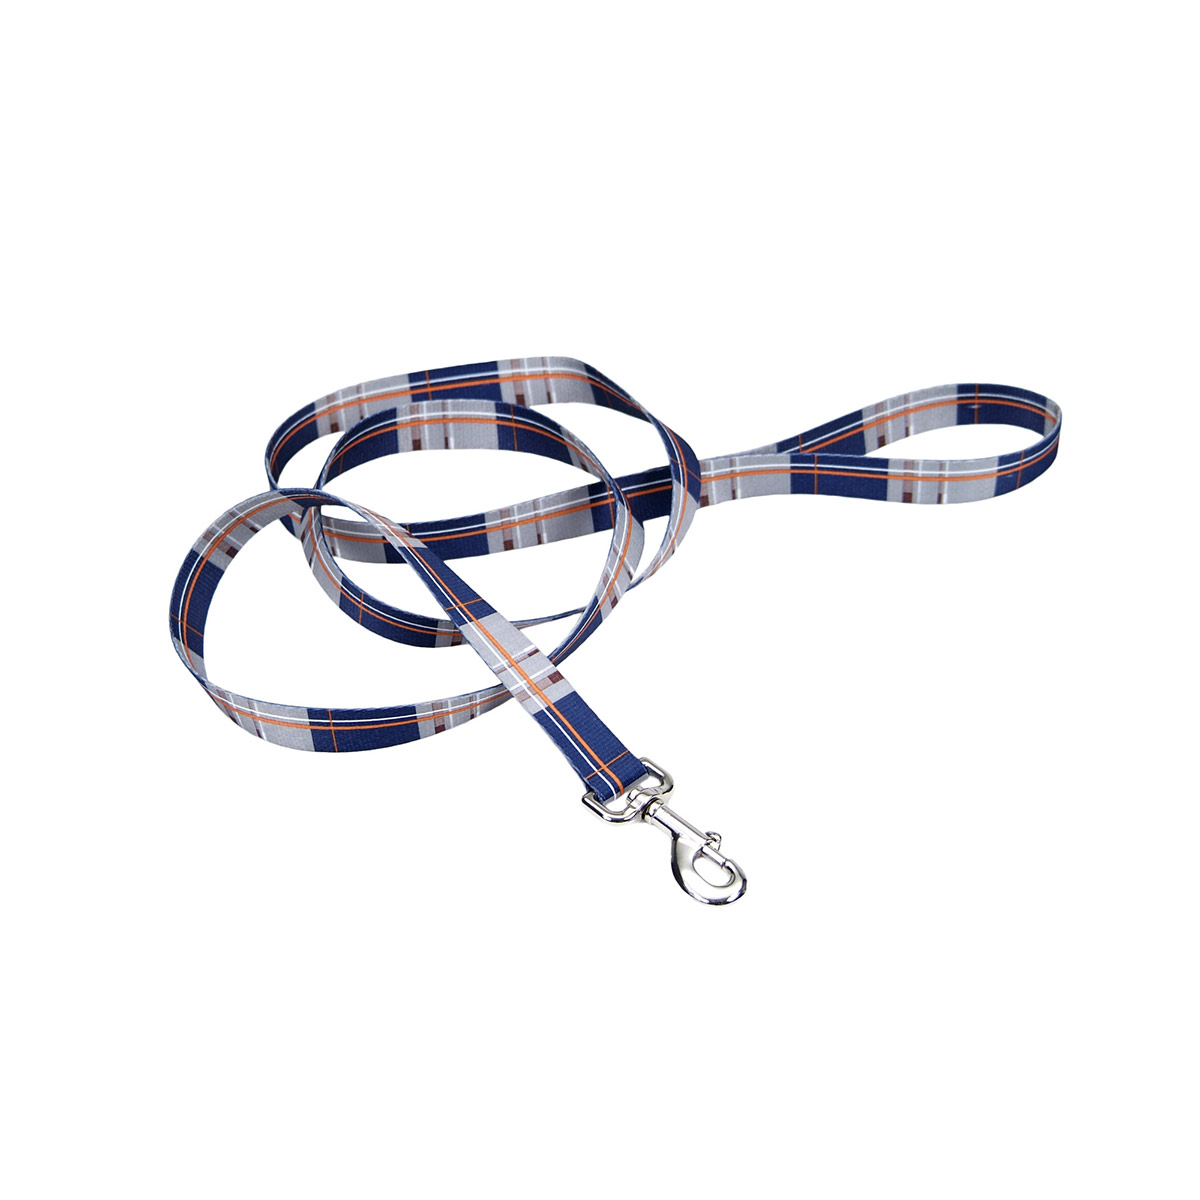 6 foot long by one inch - Coastal Dog Leads - Navy and Orange Plaid